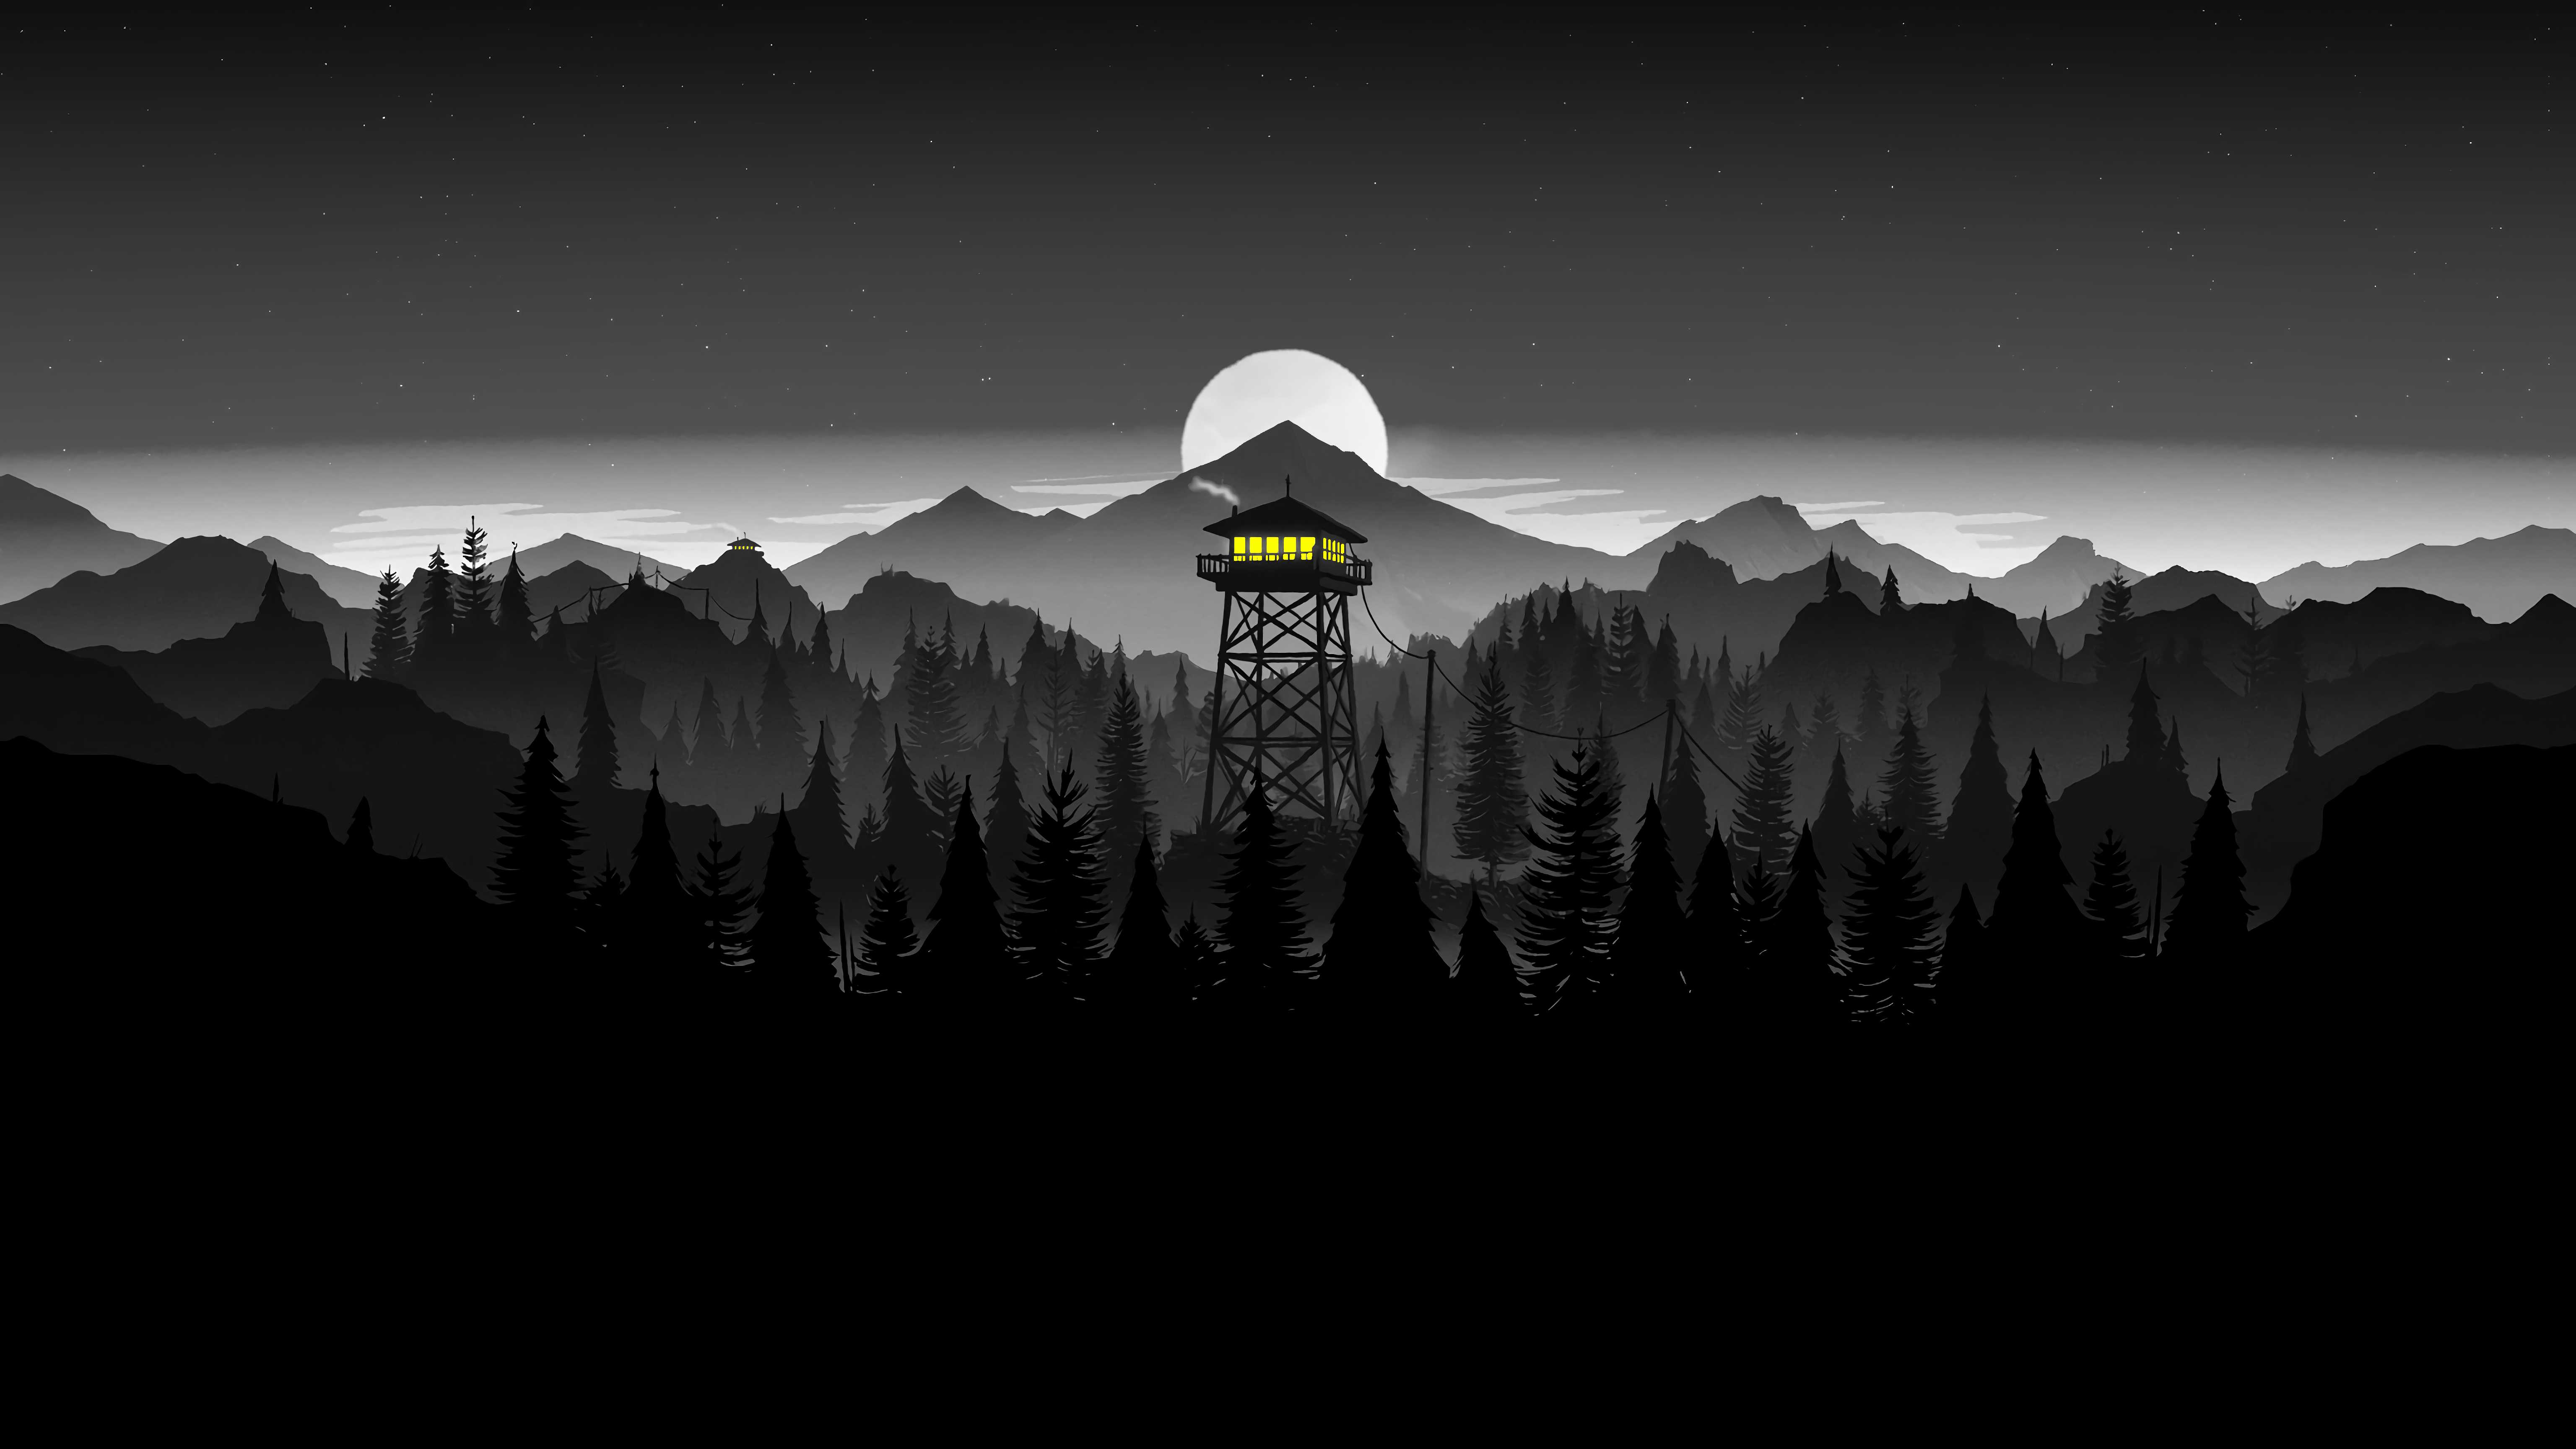 Matching Wallpaper Of Firewatch Tower White Edit By U Computer Wallpaper Desktop Wallpapers Laptop Wallpaper Desktop Wallpapers Aesthetic Desktop Wallpaper